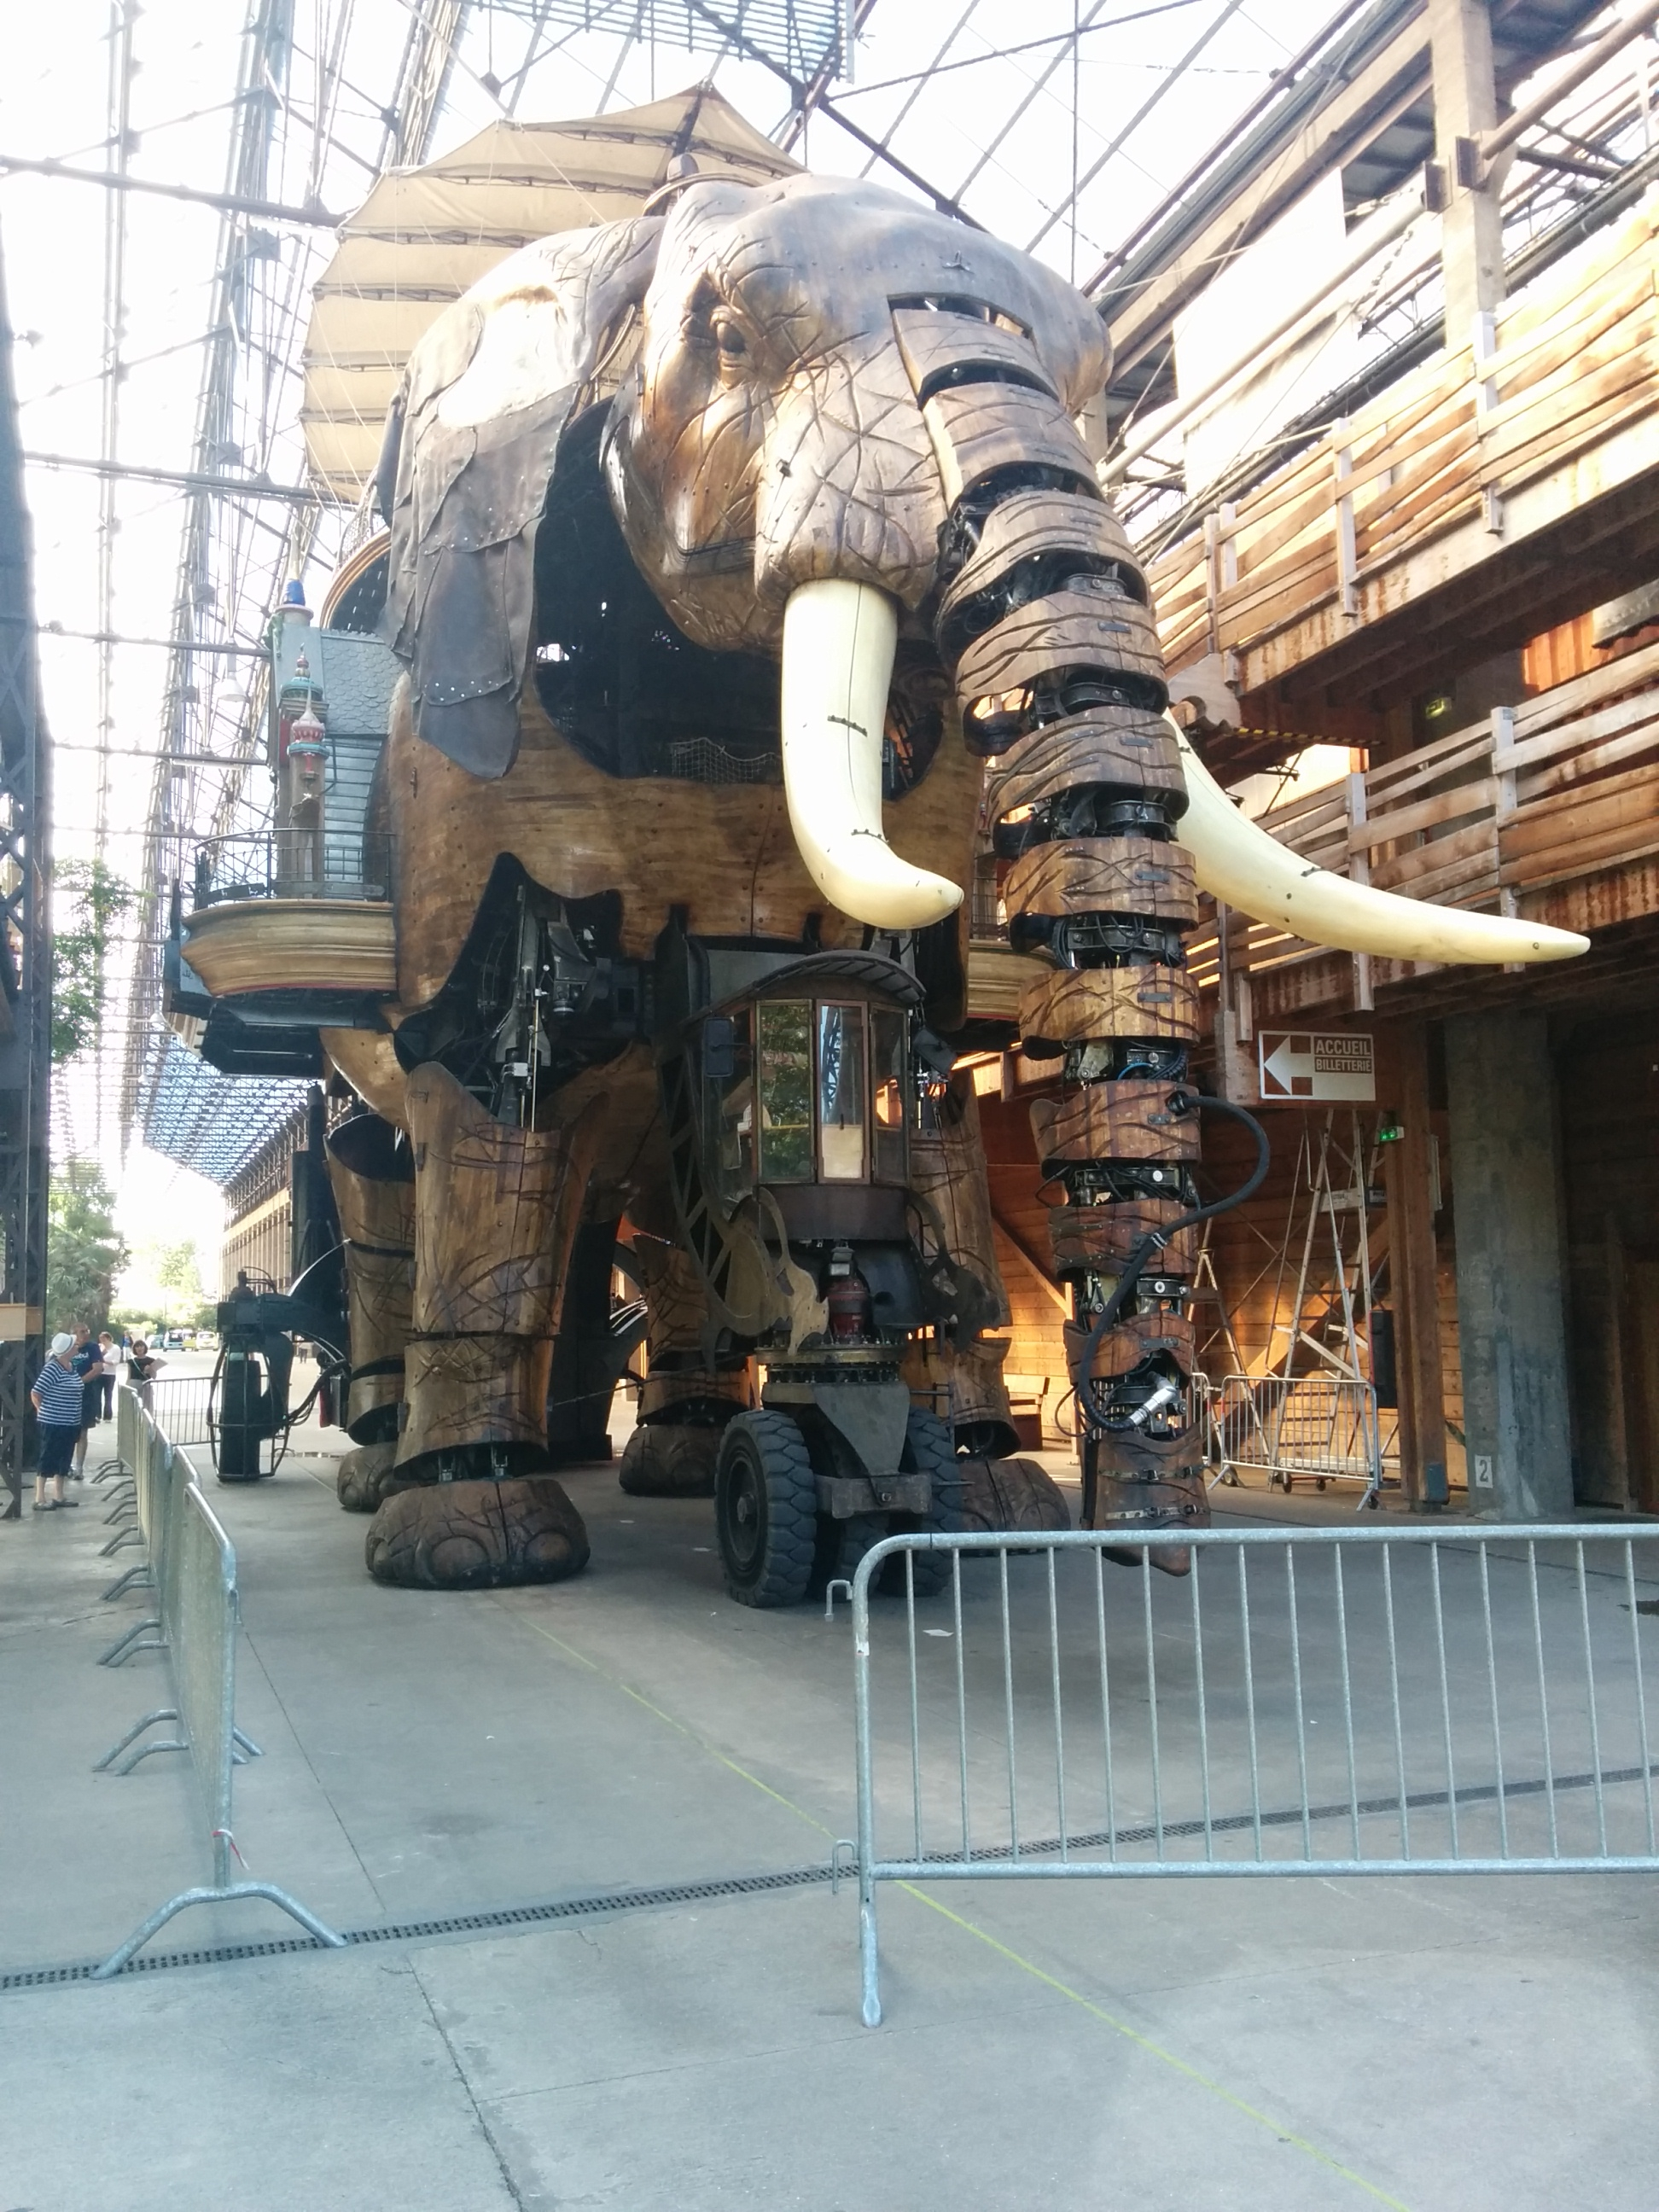 The Elephant of Nantes